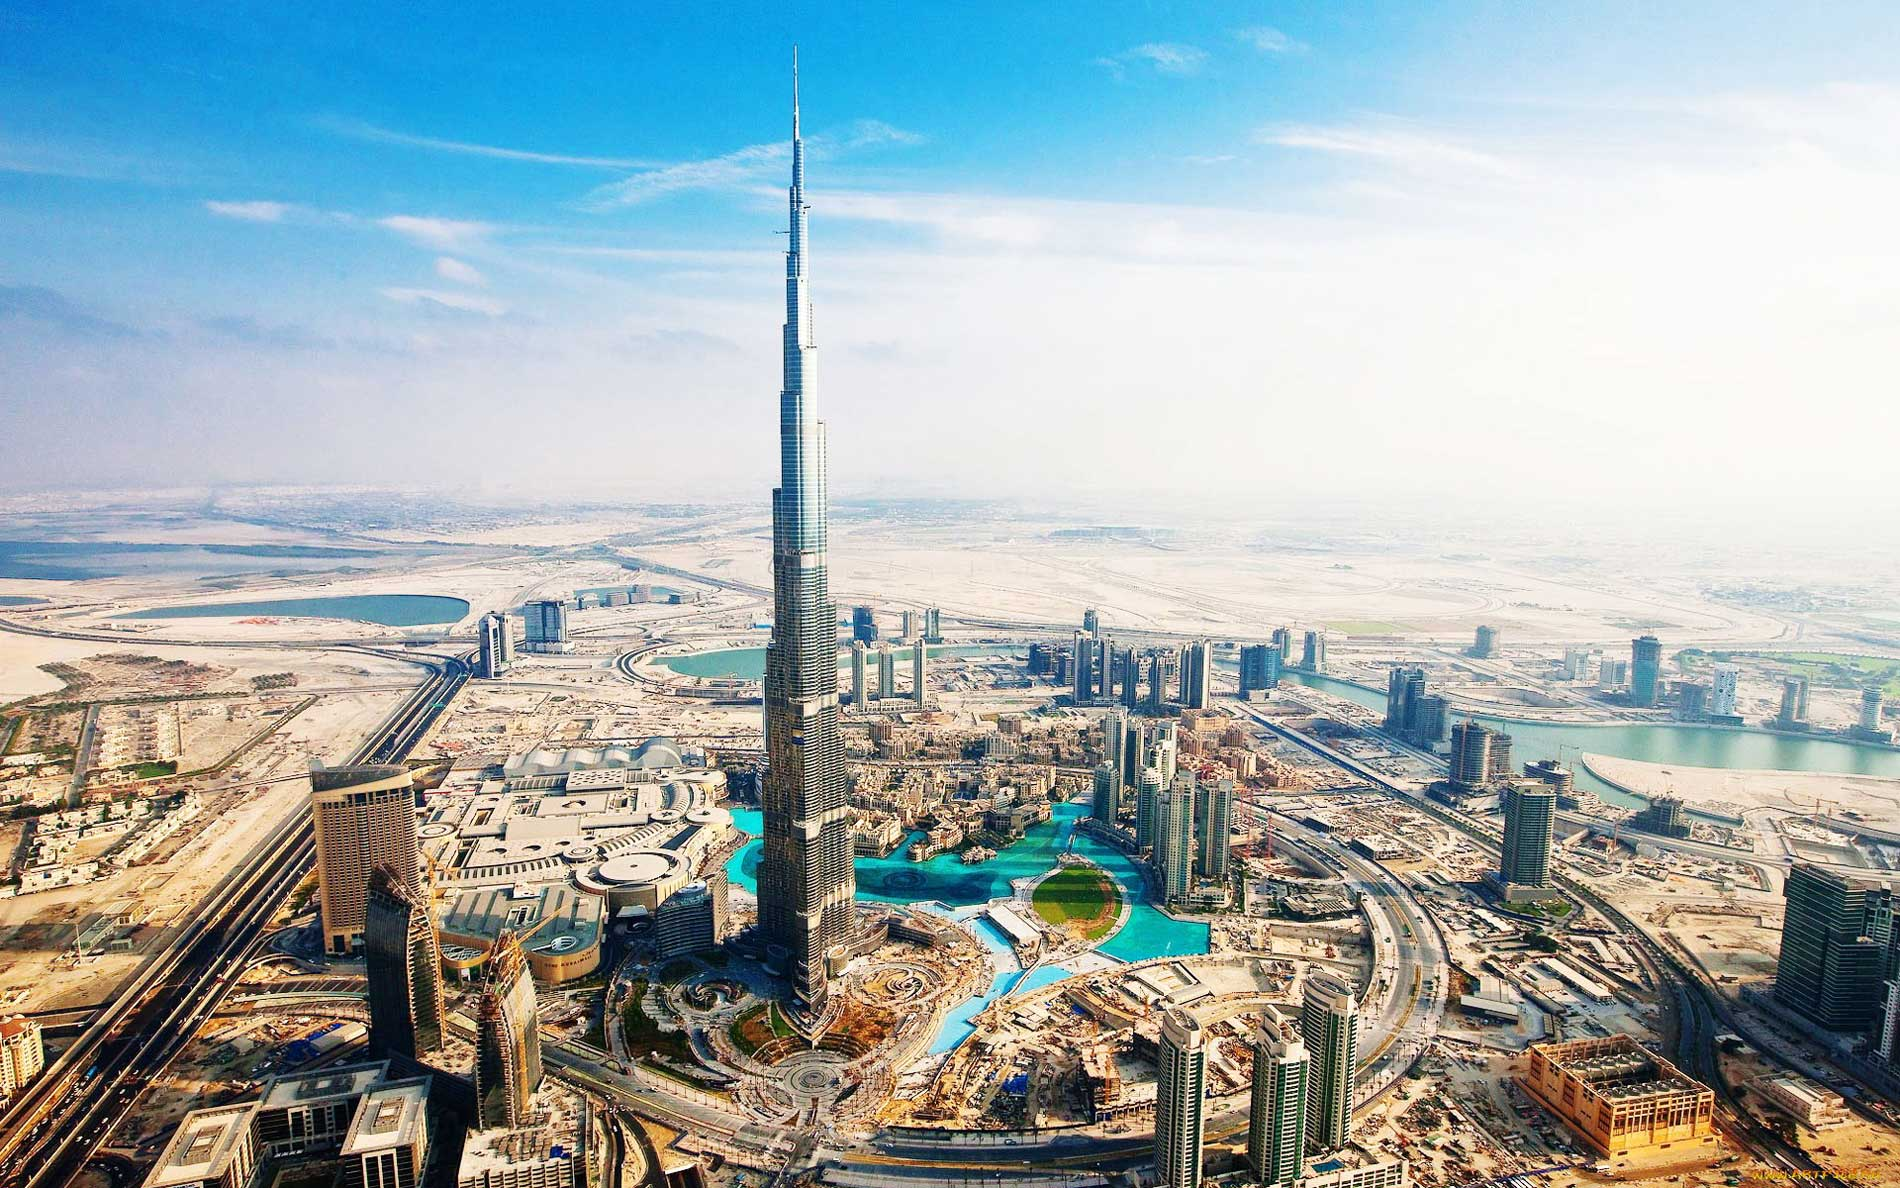 an analysis of the cultural and marketing issues in dubai united arab emirates United arab emirates ('uae') carrier and emirates, dubai's airline, rapidly expanding doing business in the uae.